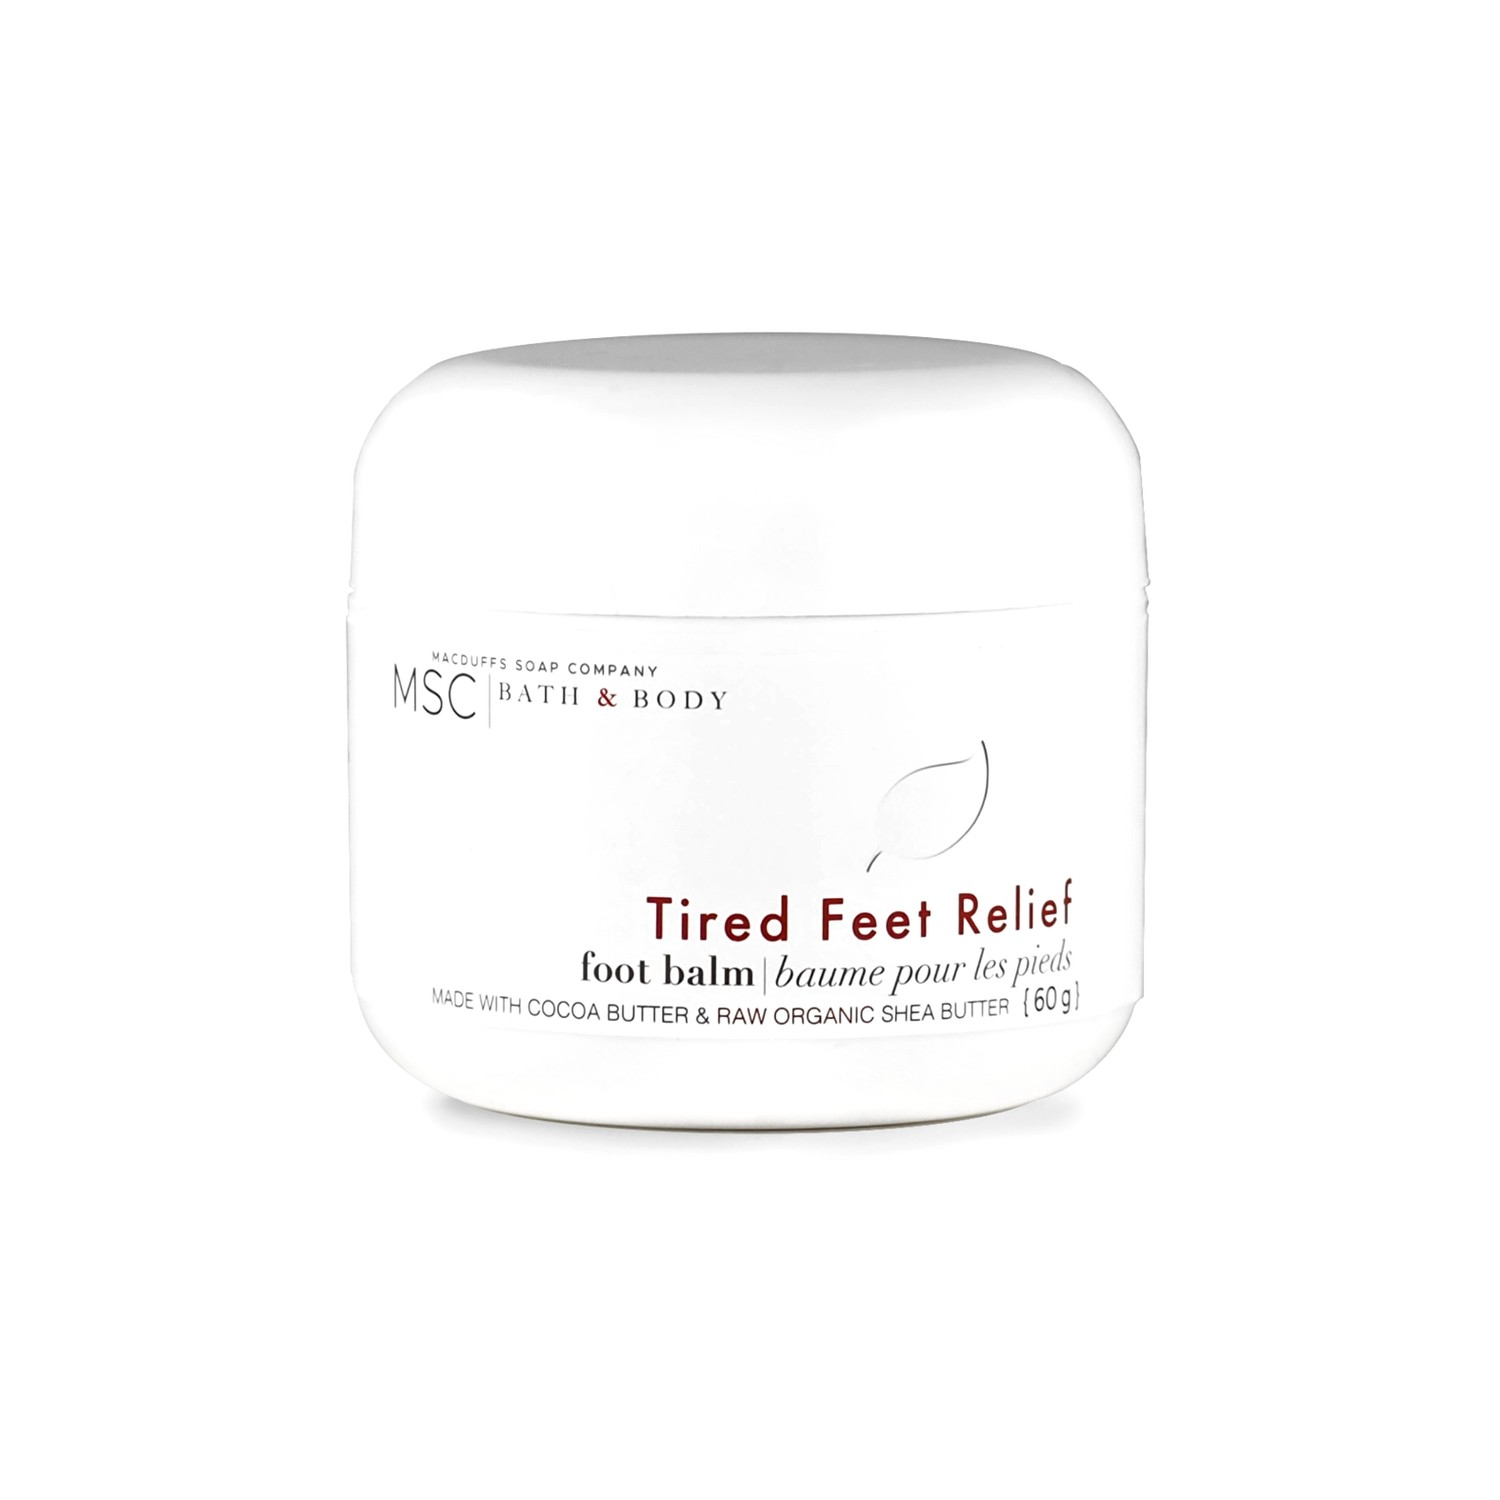 Tired Feet Relief